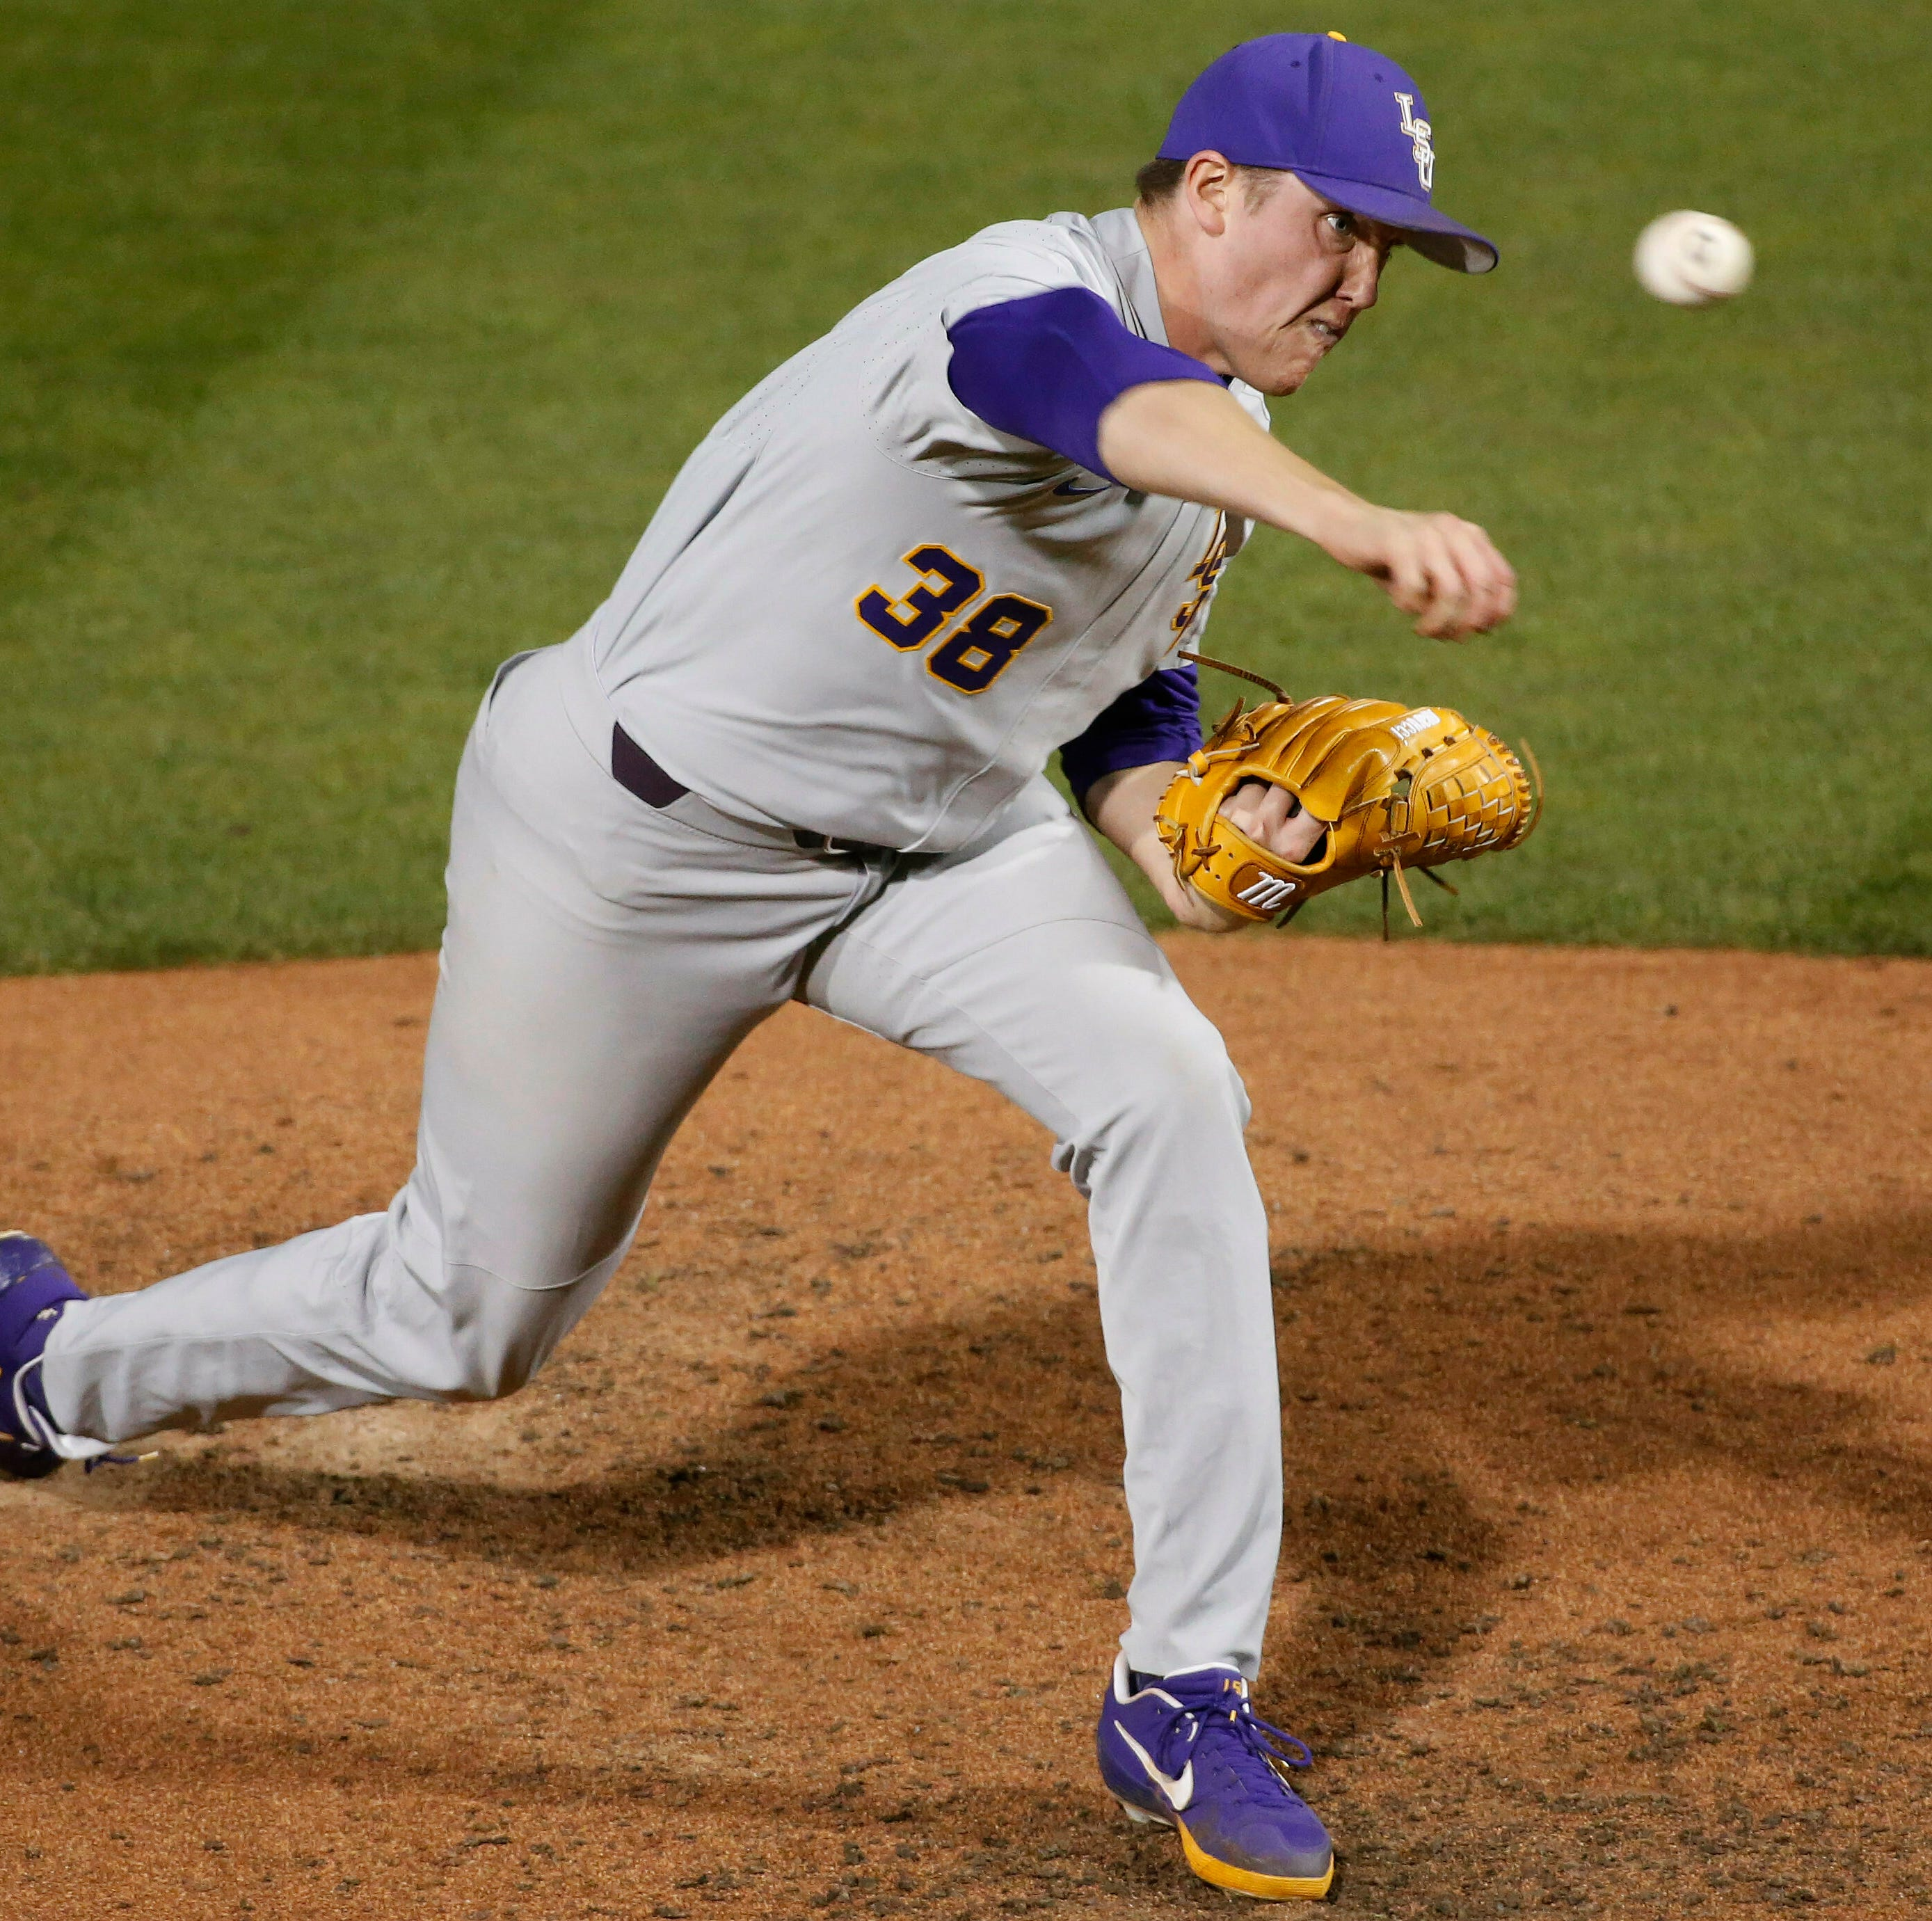 Smith's late home run lifts LSU baseball to win over A&M